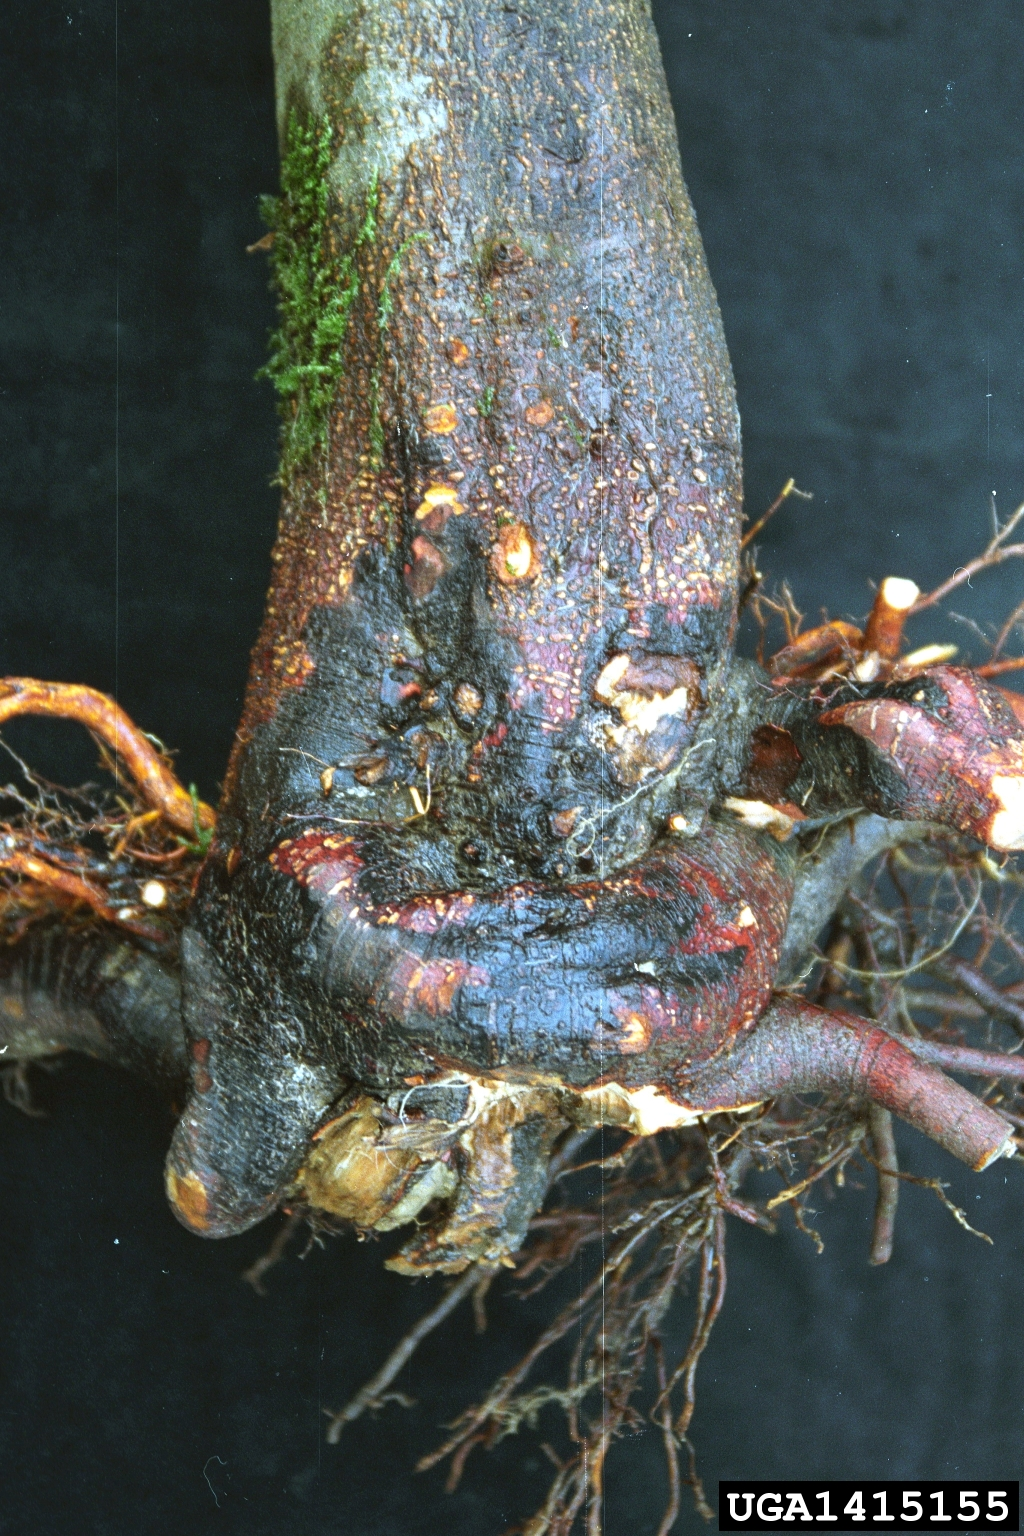 Phytophthora root and crown rot Phytophthora cambivora